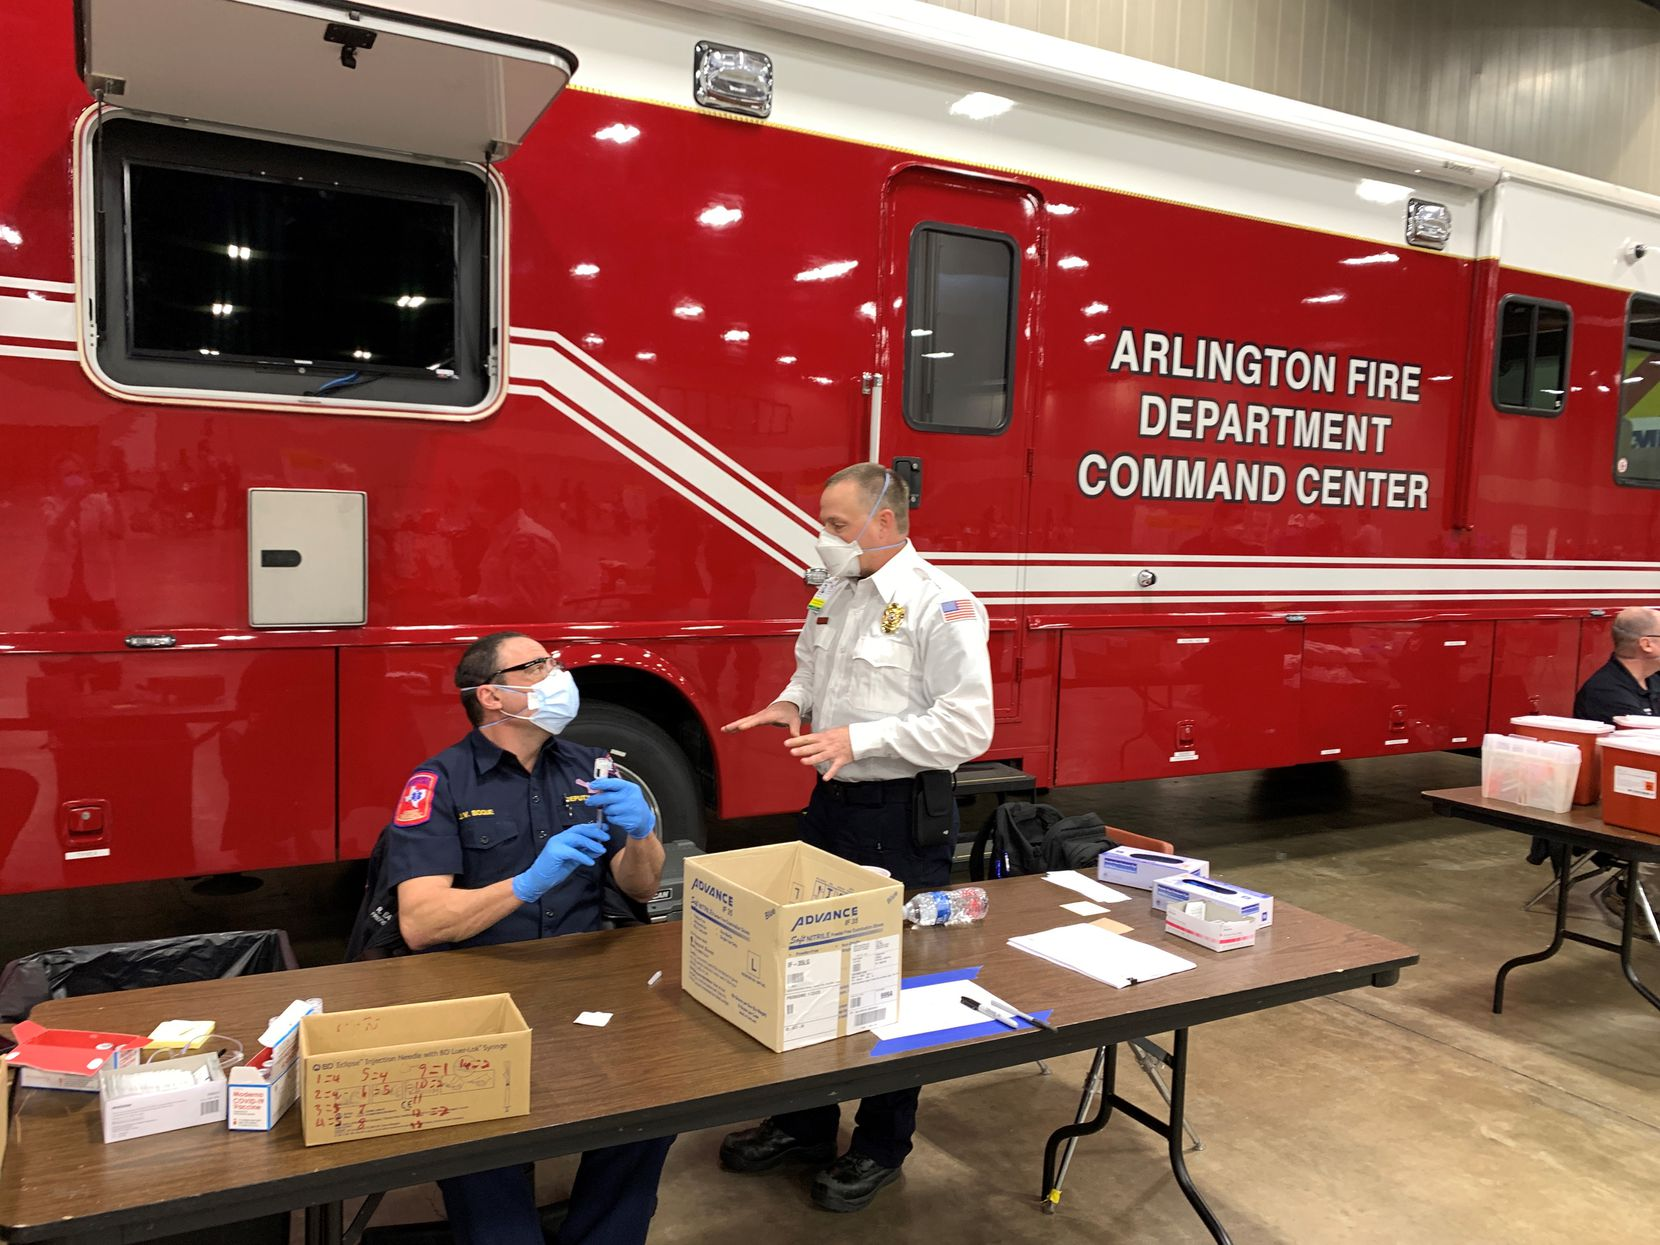 Michael Marsh, operations manger at American Medical Response Arlington, and James Boque, Arlington Fire Department Deputy Chief, chat about the vaccine at Arlington's COVID-19 vaccination site. Marsh was deployed to New York City for 30 days last year to help deliver ambulances to first responders.